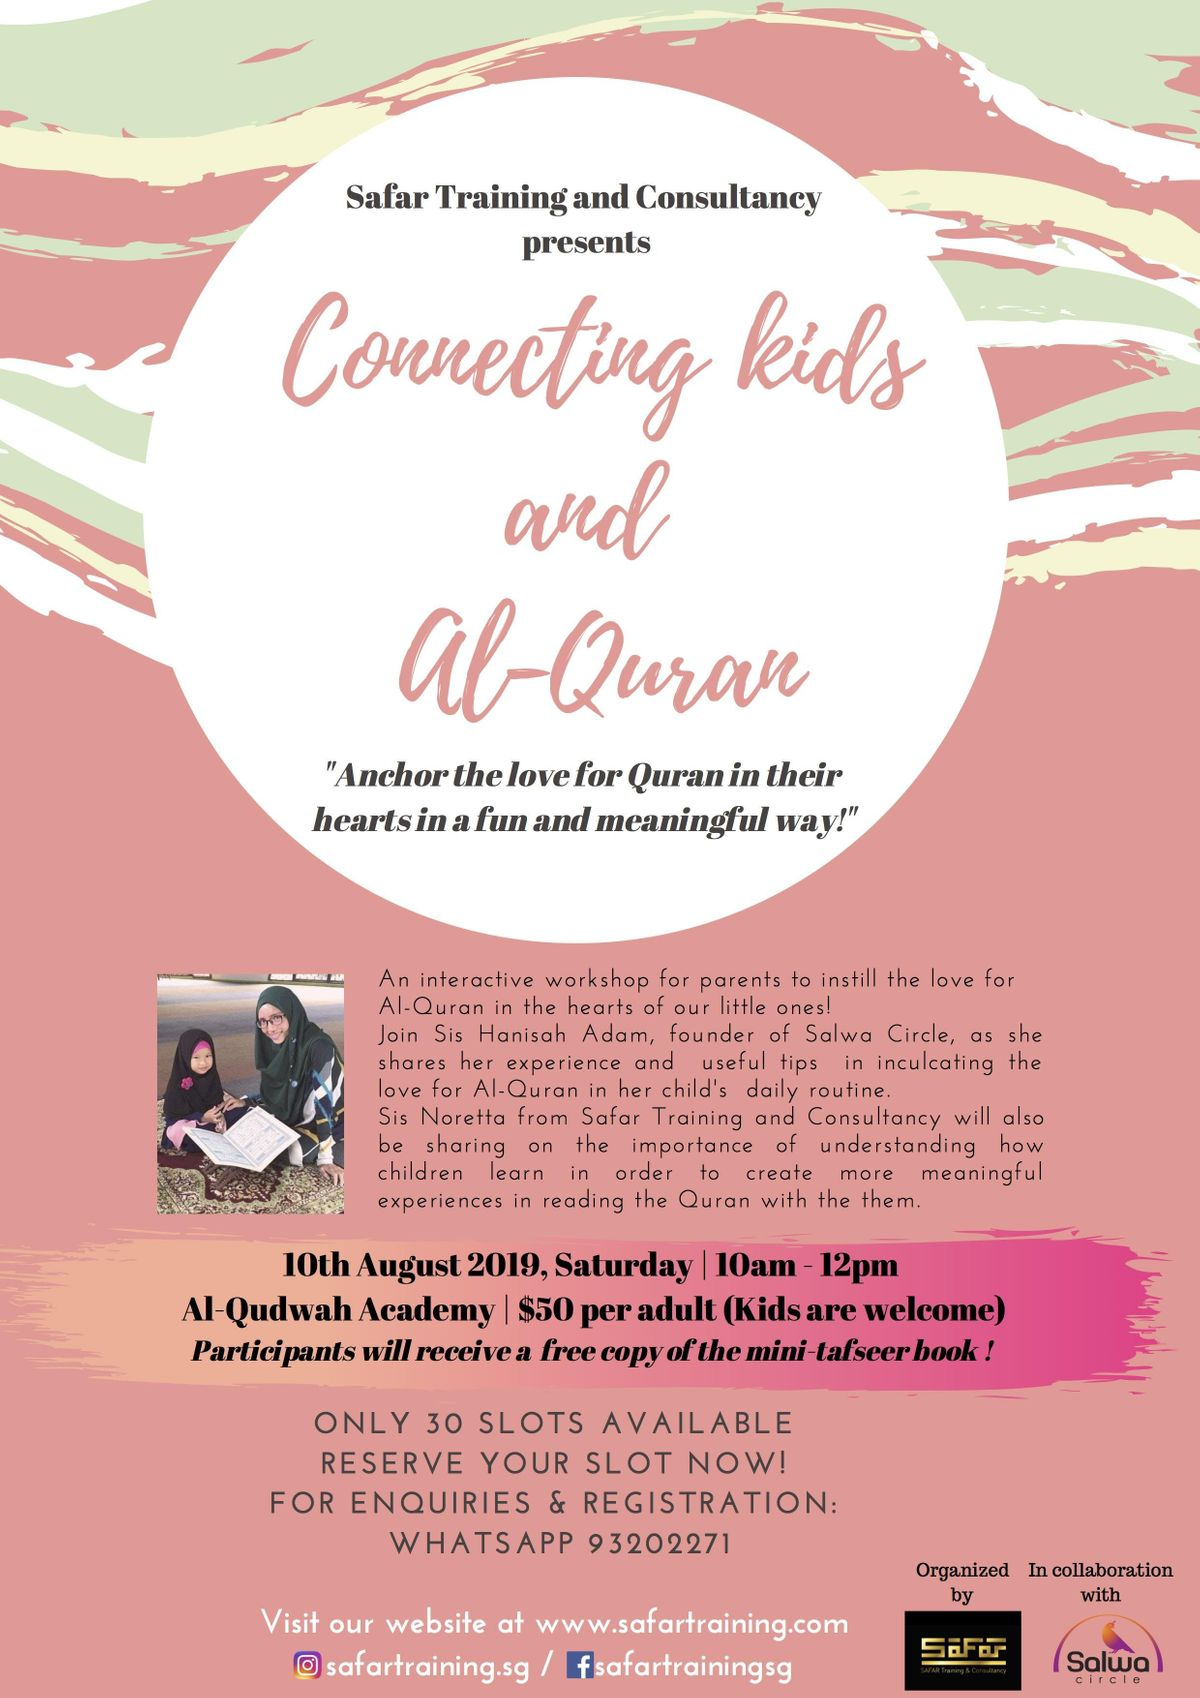 Connecting Kids and Al-Quran